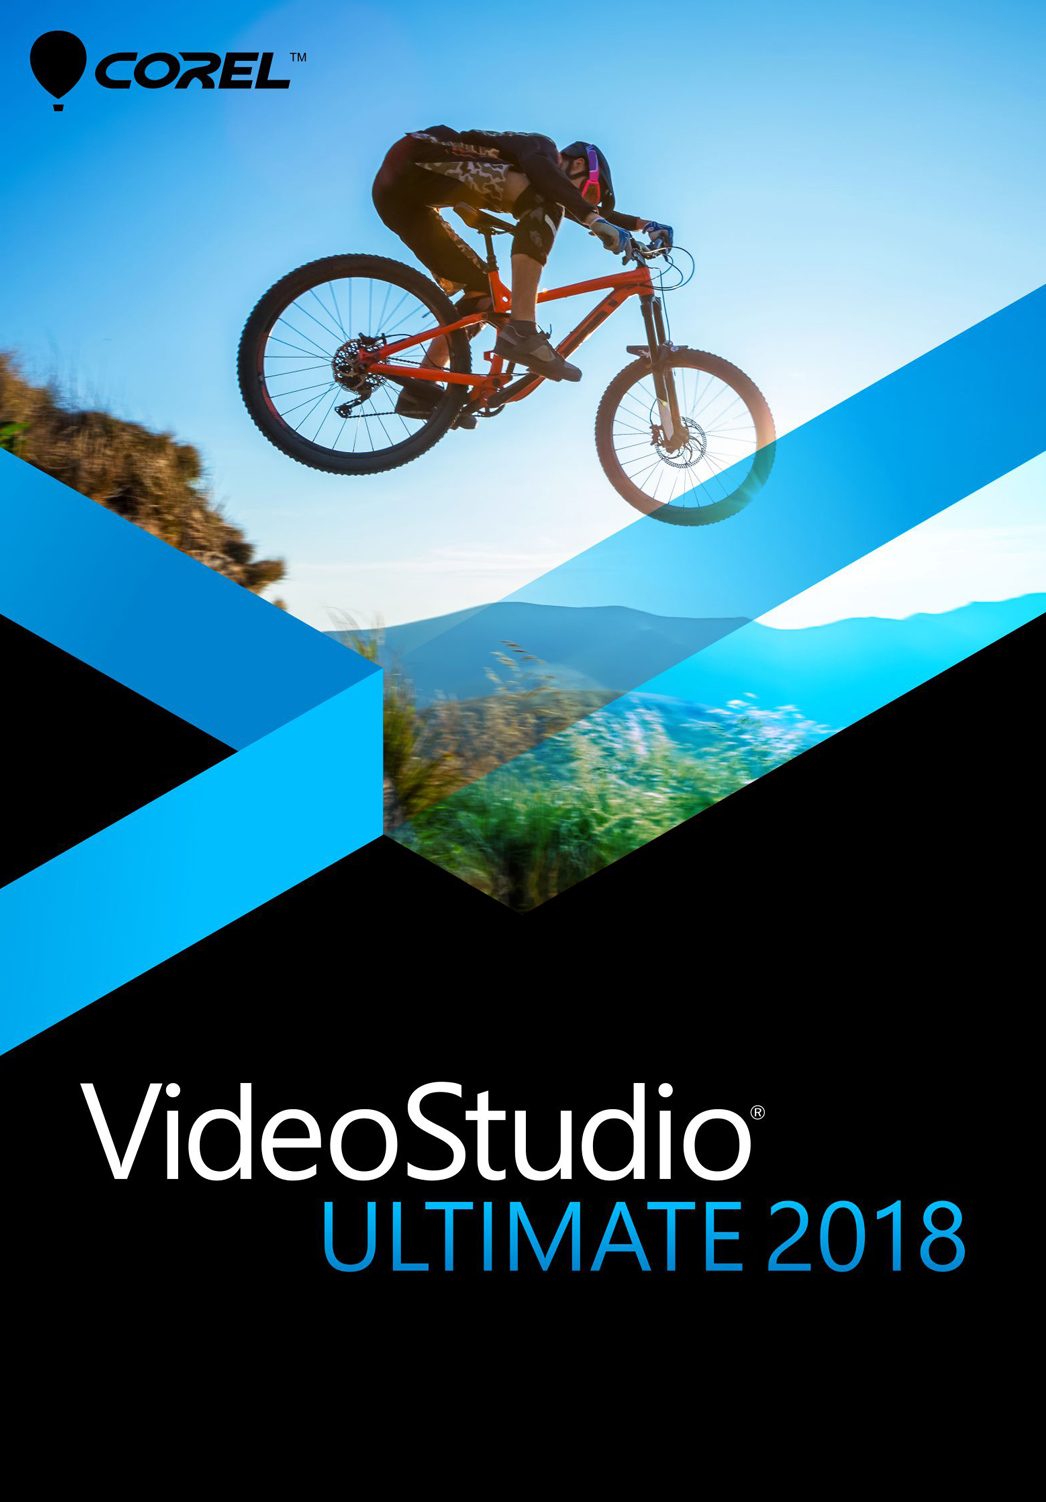 Corel VideoStudio Ultimate 2018 Video Editing Suite [Download]